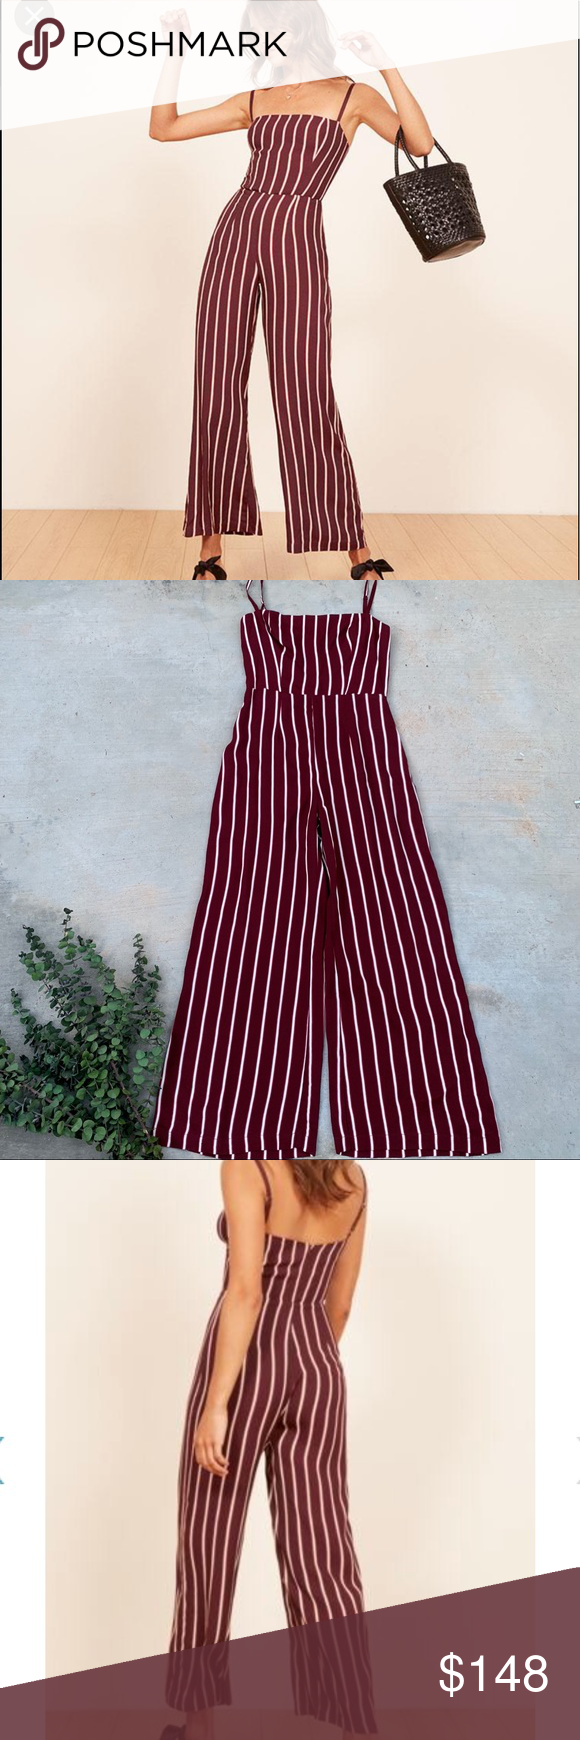 bf63c068c807 Reformation Guatemala Stripe Jumpsuit Has a small flaw by zipper ...